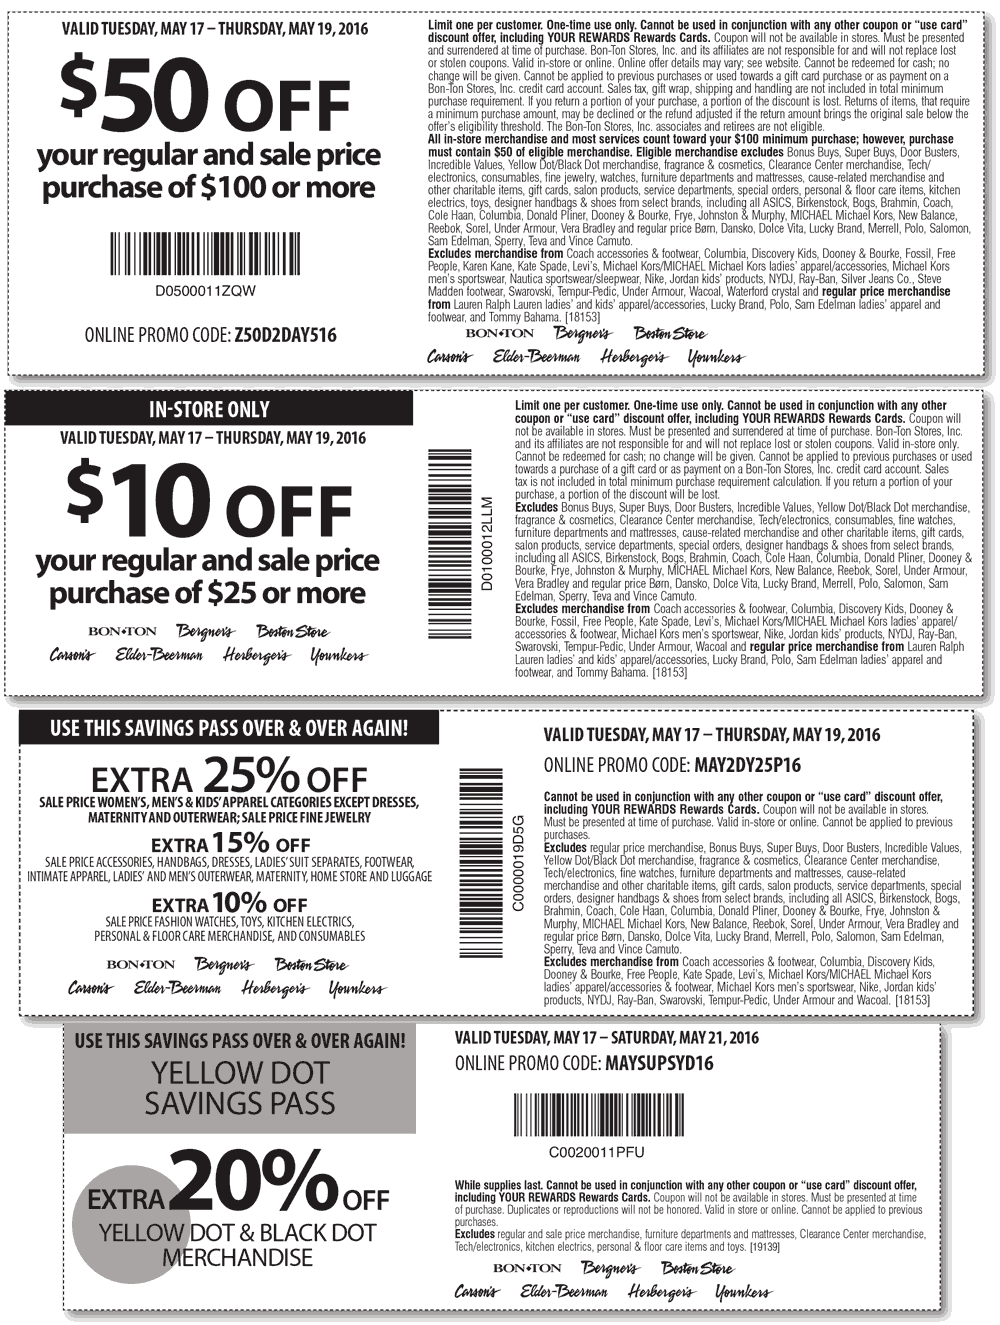 Carsons Coupon July 2017 $10 off $25 & more at Carsons, Bon Ton & sister stores, or online via promo code Z50D2DAY516